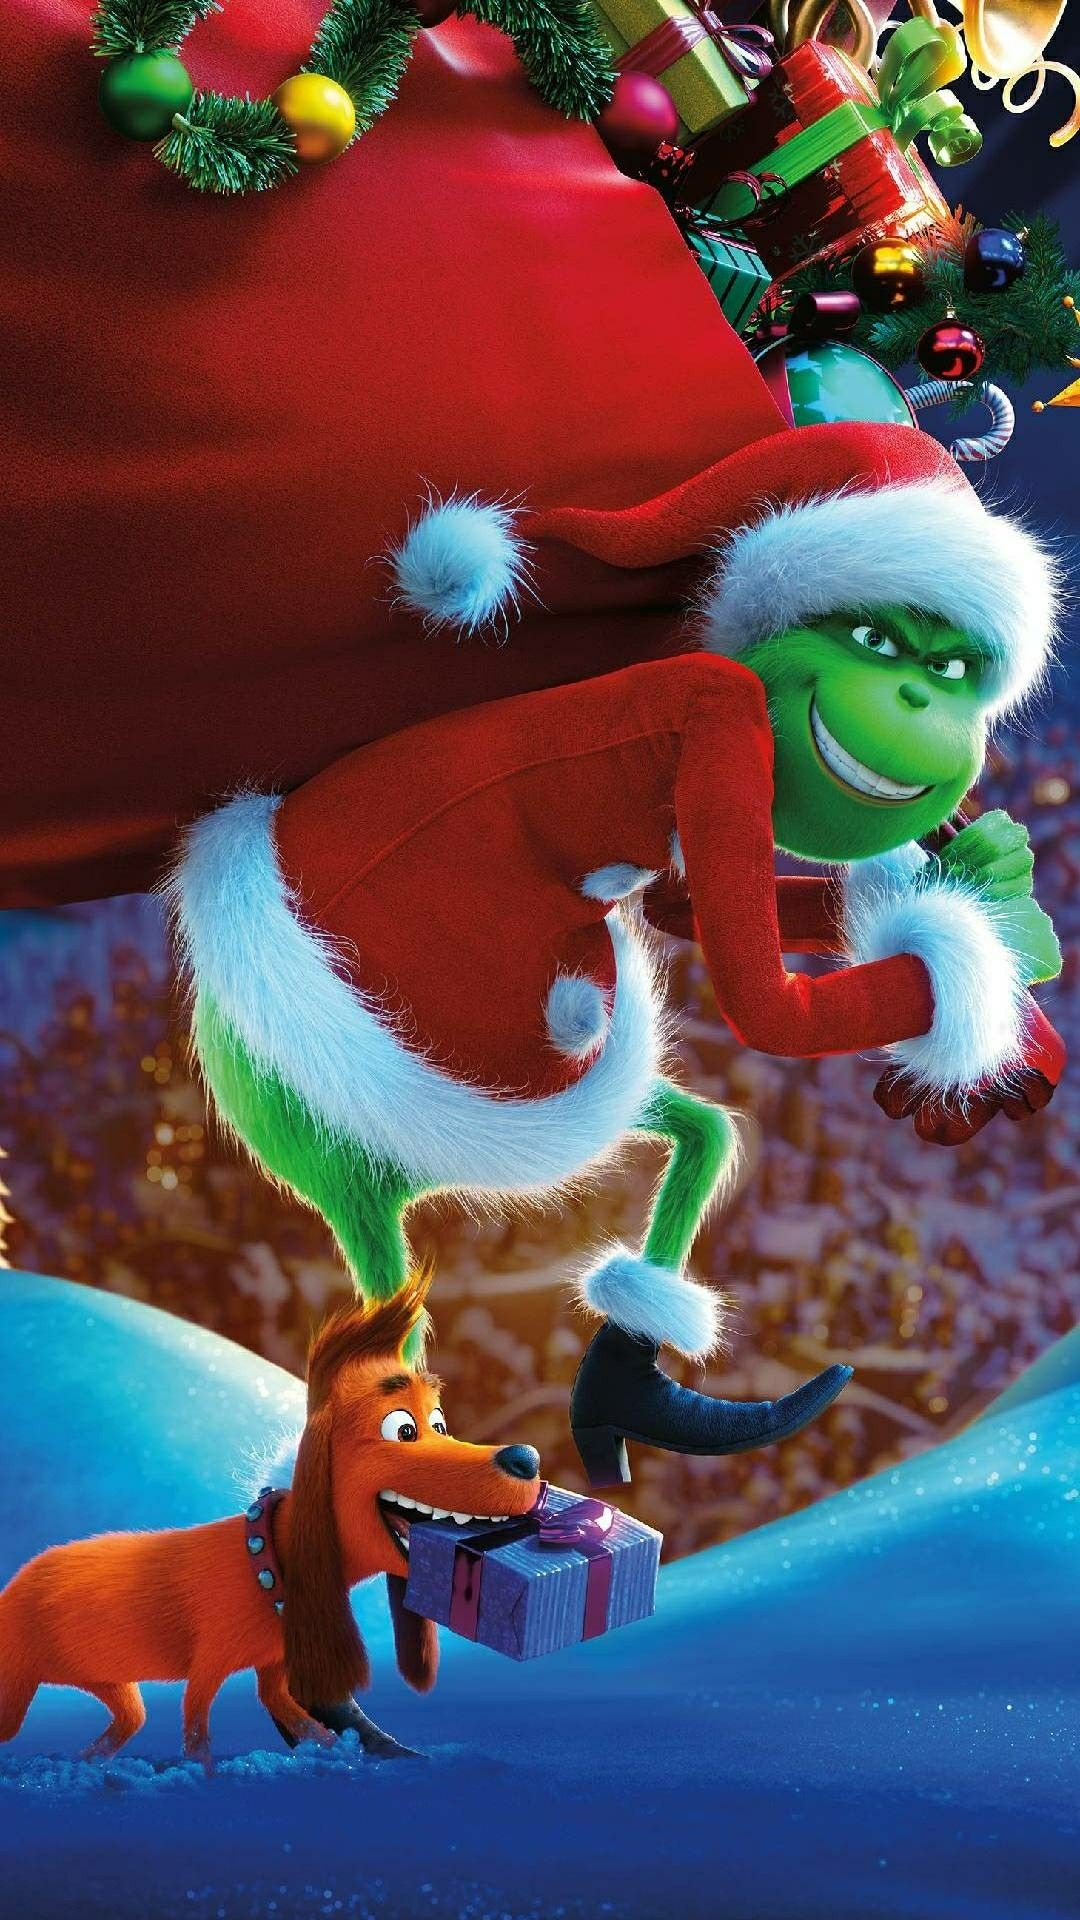 This grinch wallpaper is everything Christmas ornaments